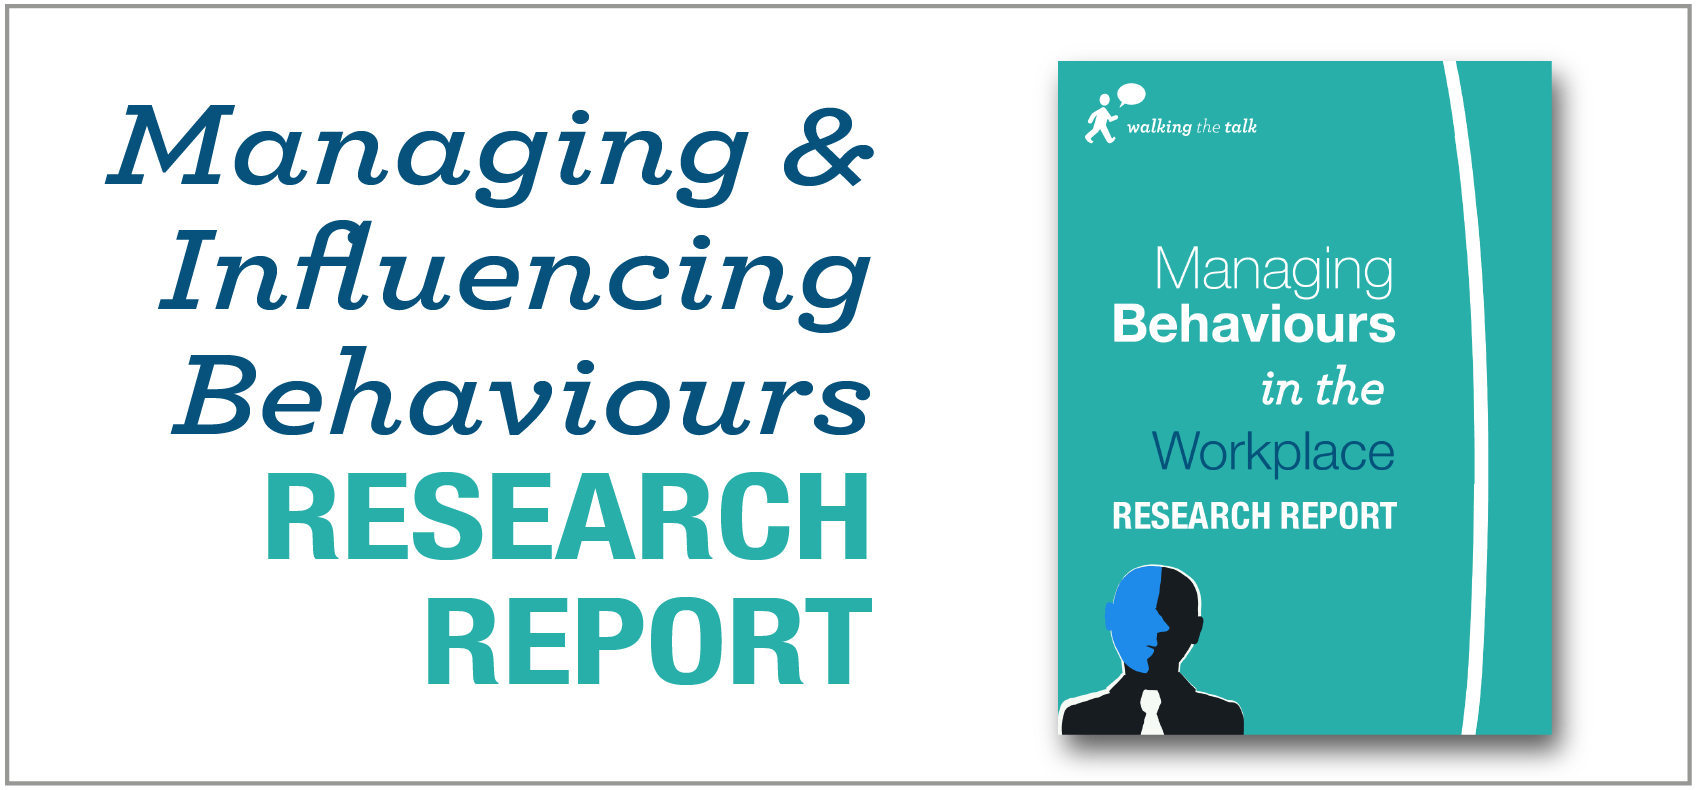 Managing Behaviours Report Home Page Small